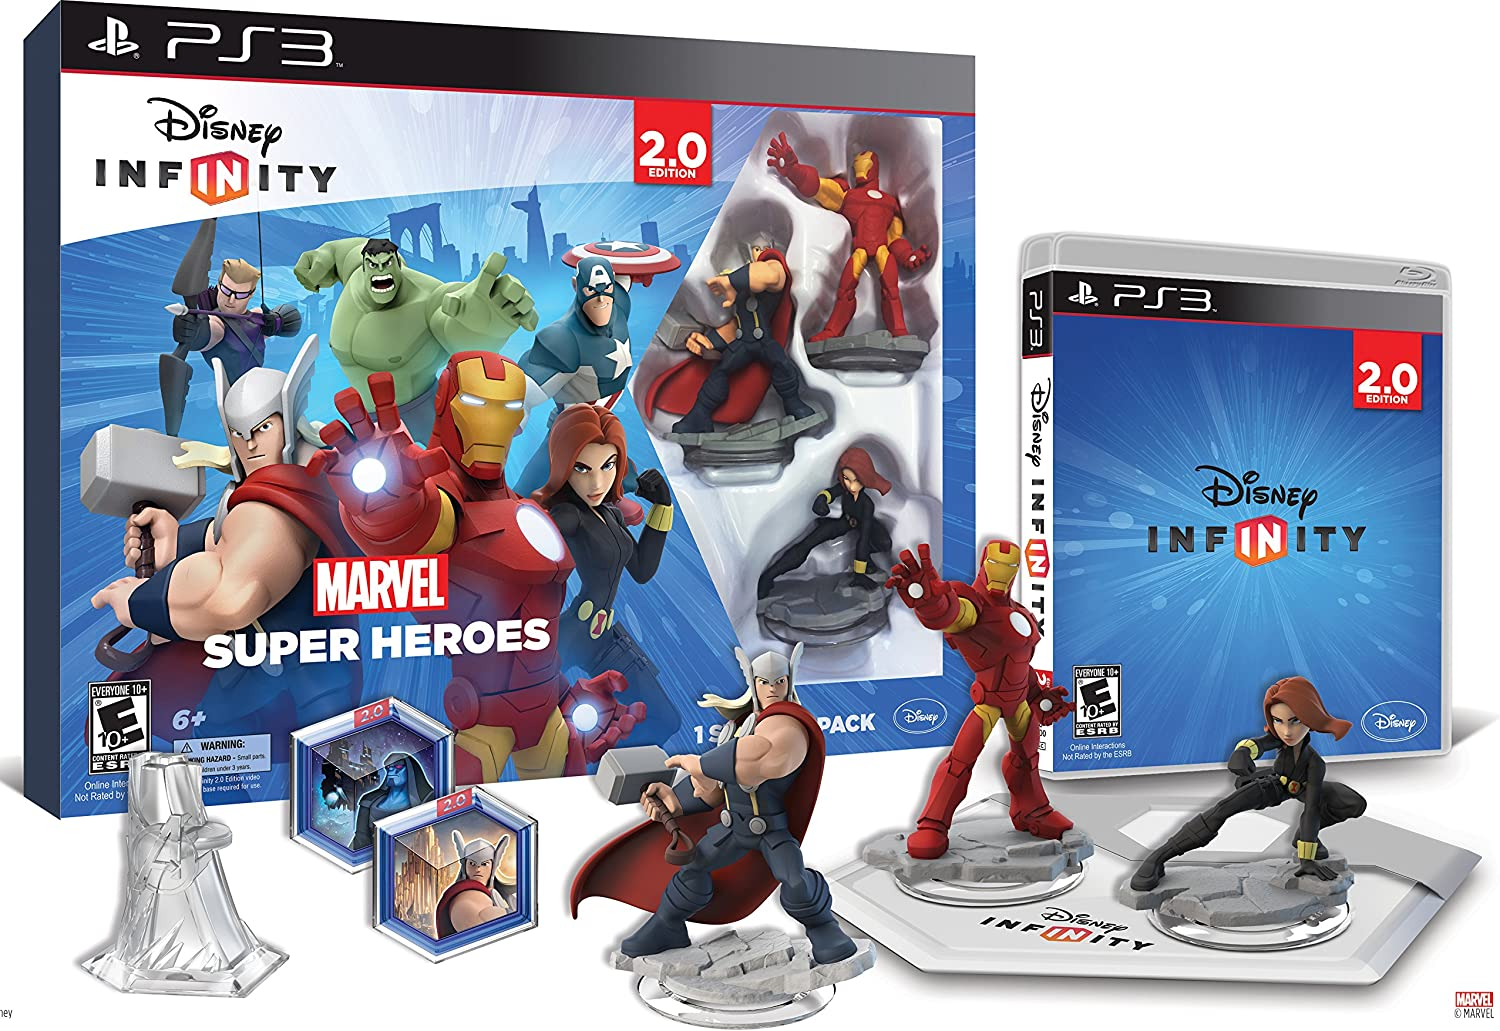 Disney INFINITY  Marvel Super Heroes (2.0 Edition) Video Game Starter Pack  PlayStation 3